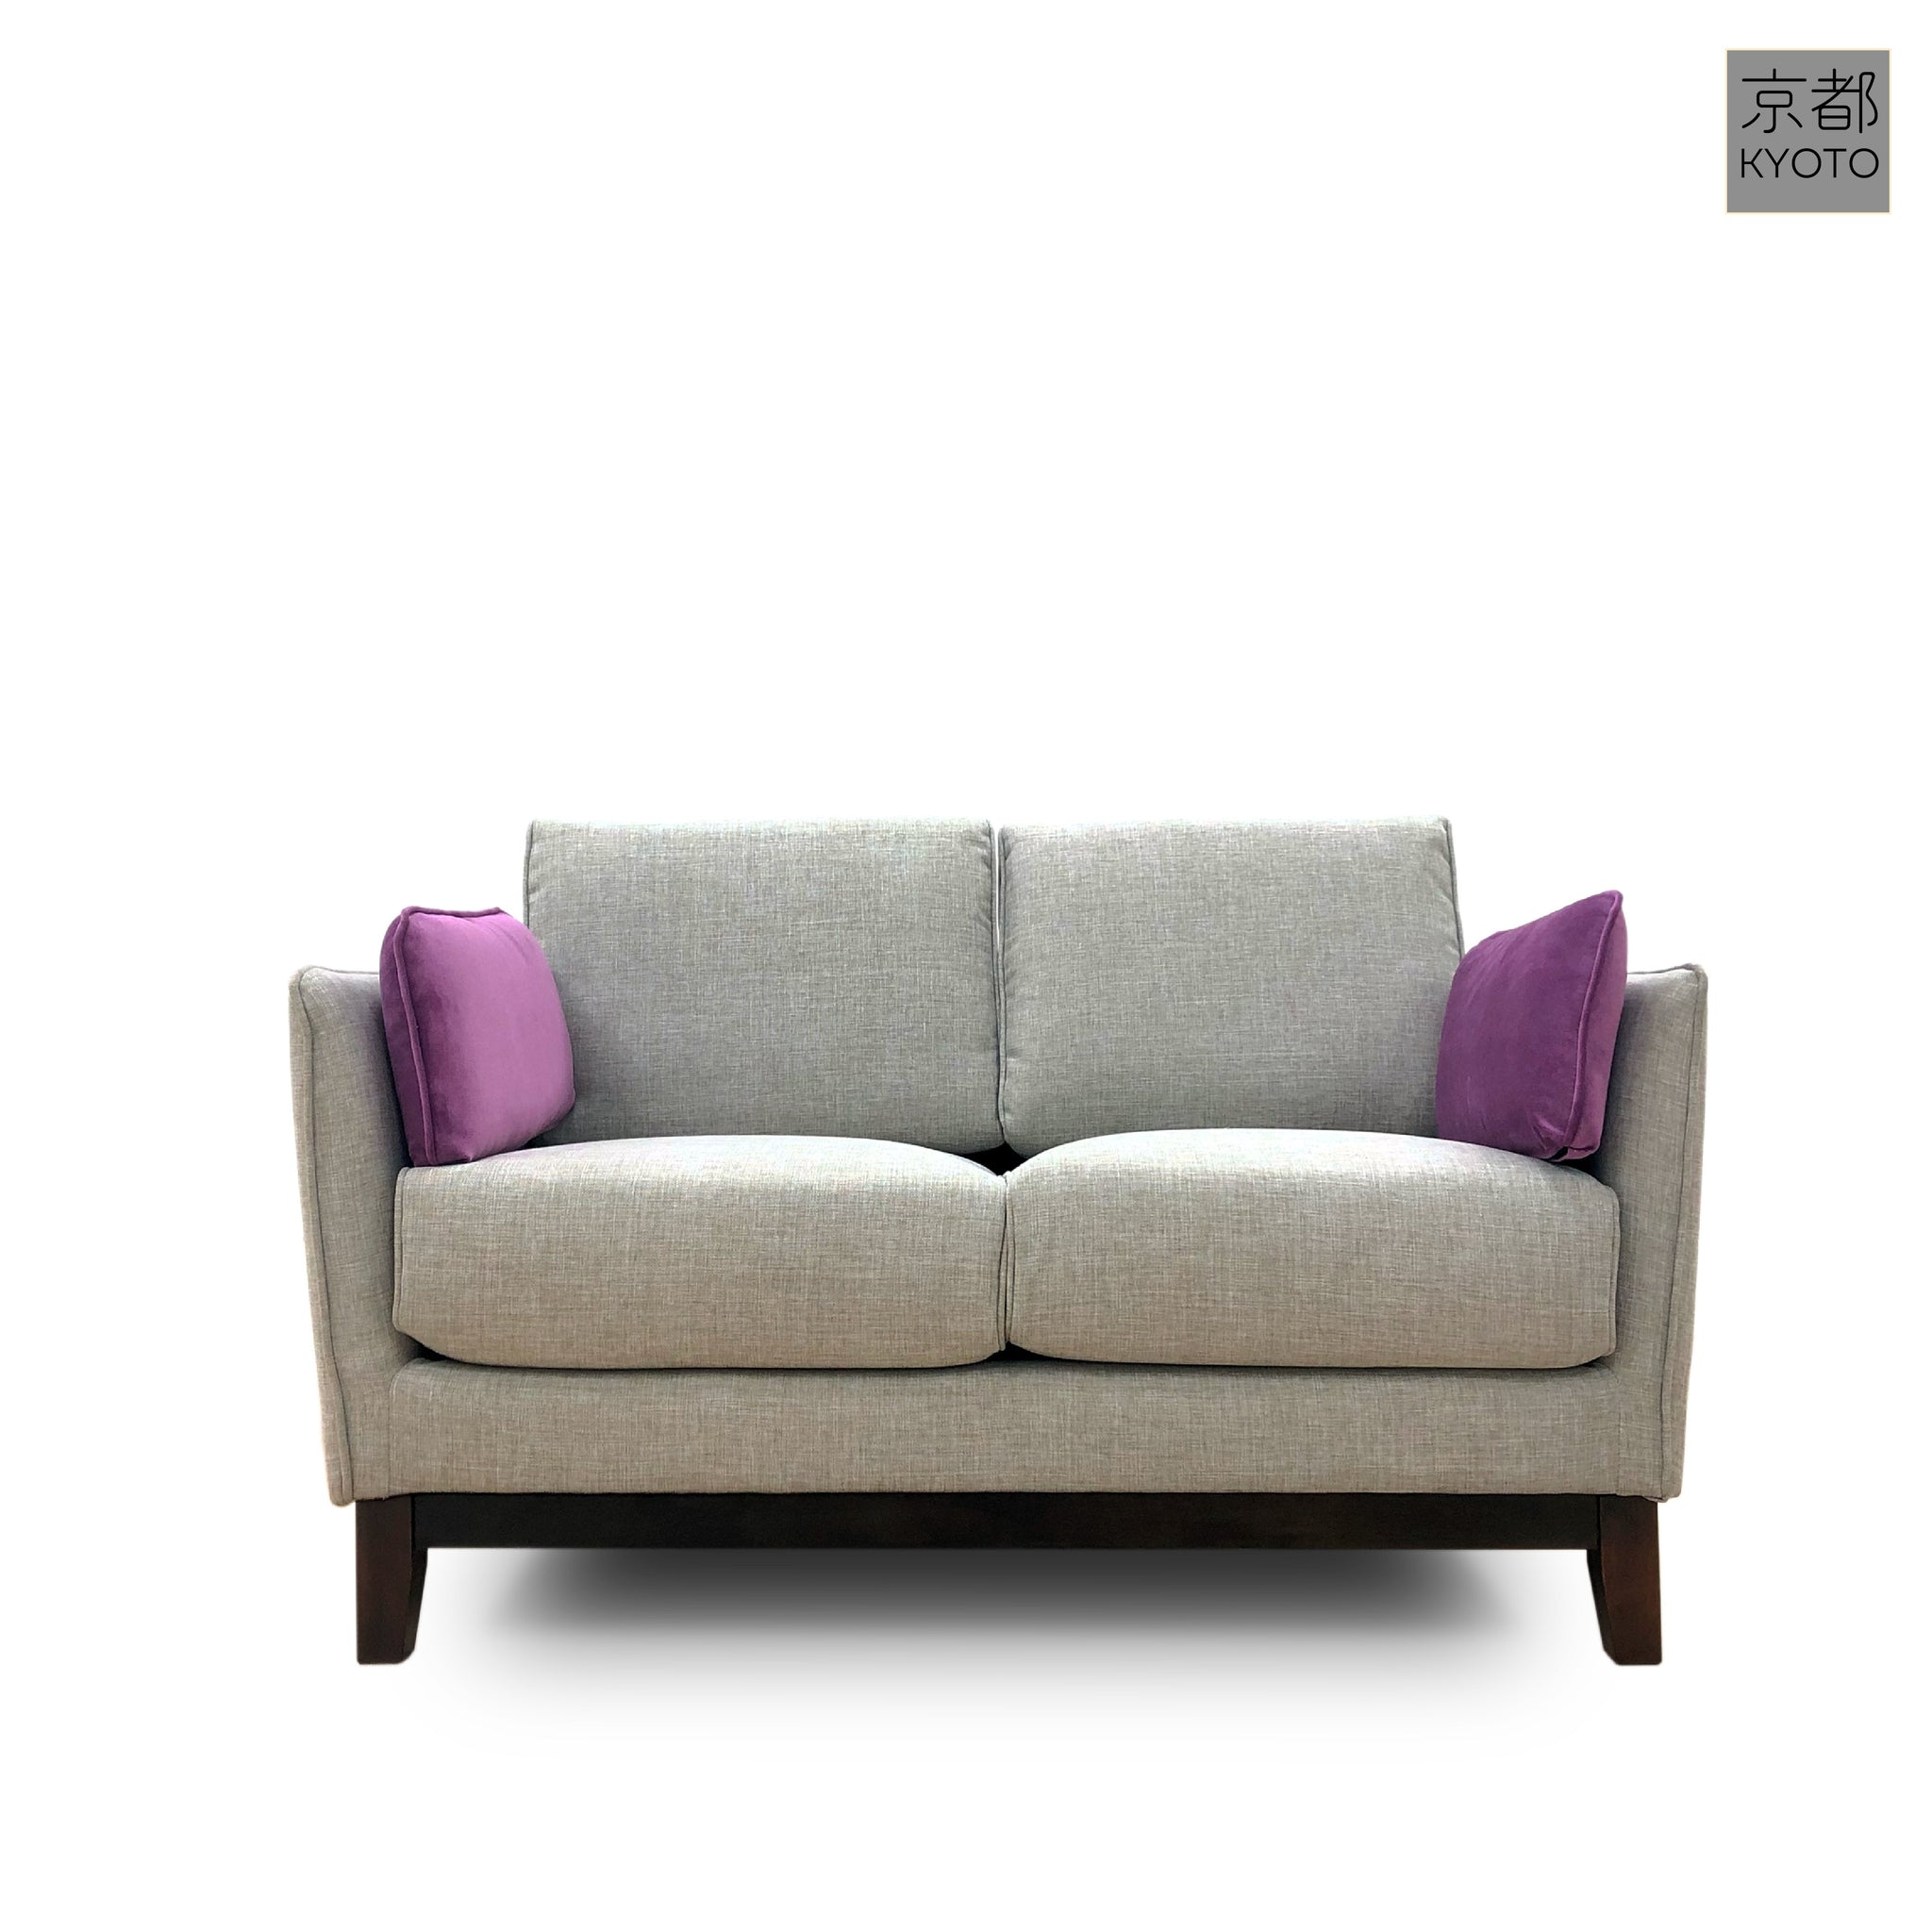 Kyoto Fabric Sofa Available In 2 Or 3 Seaters Picket Rail